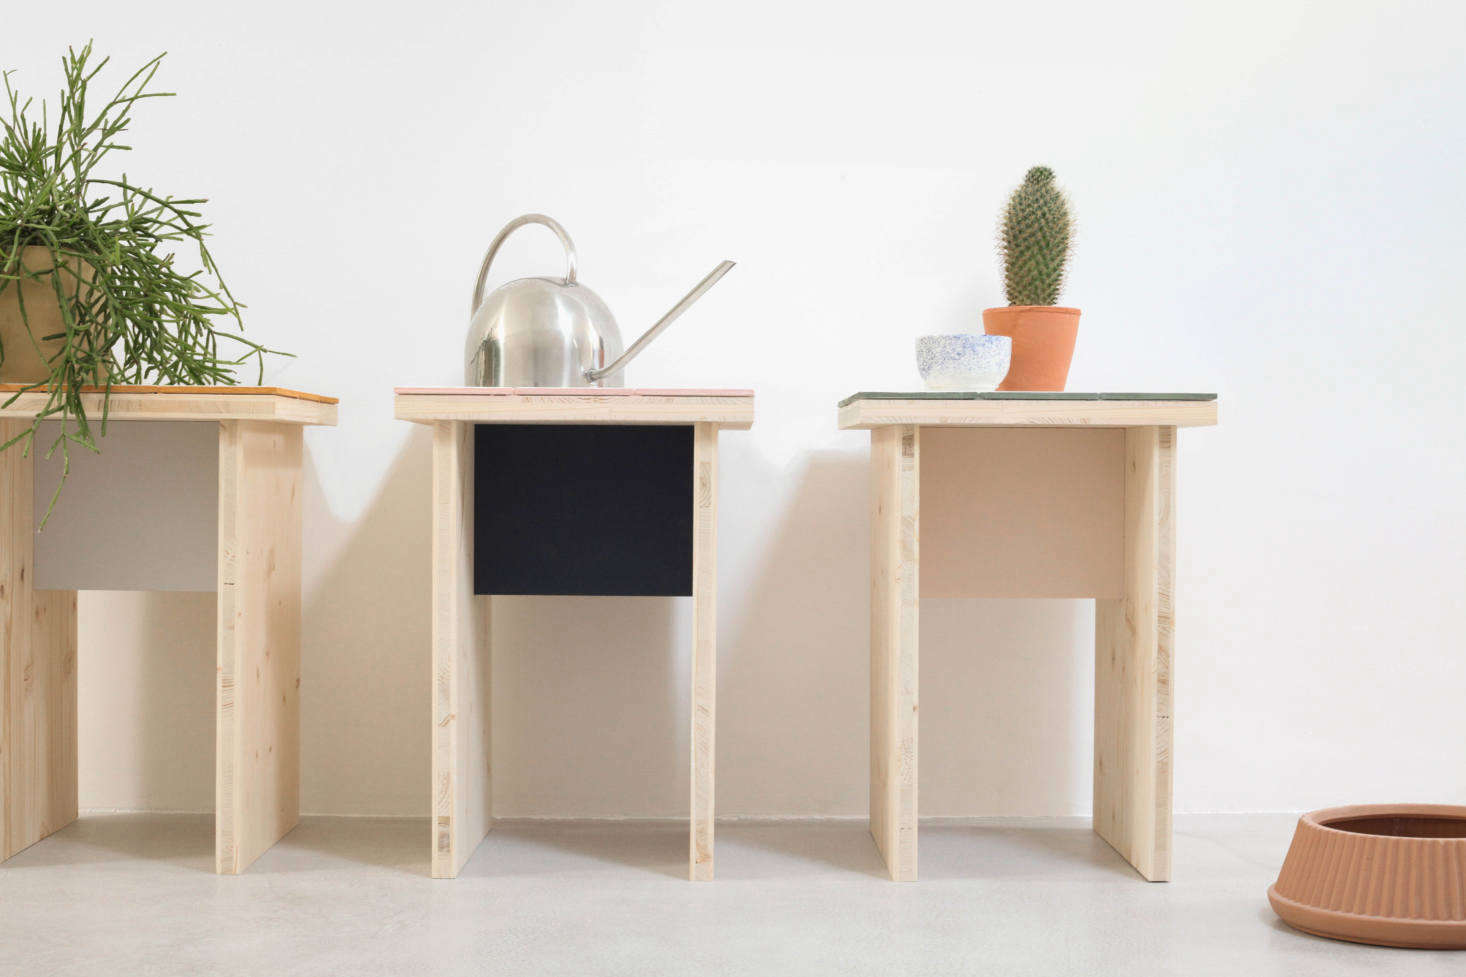 The side table has a simple plywood frame with a &#8